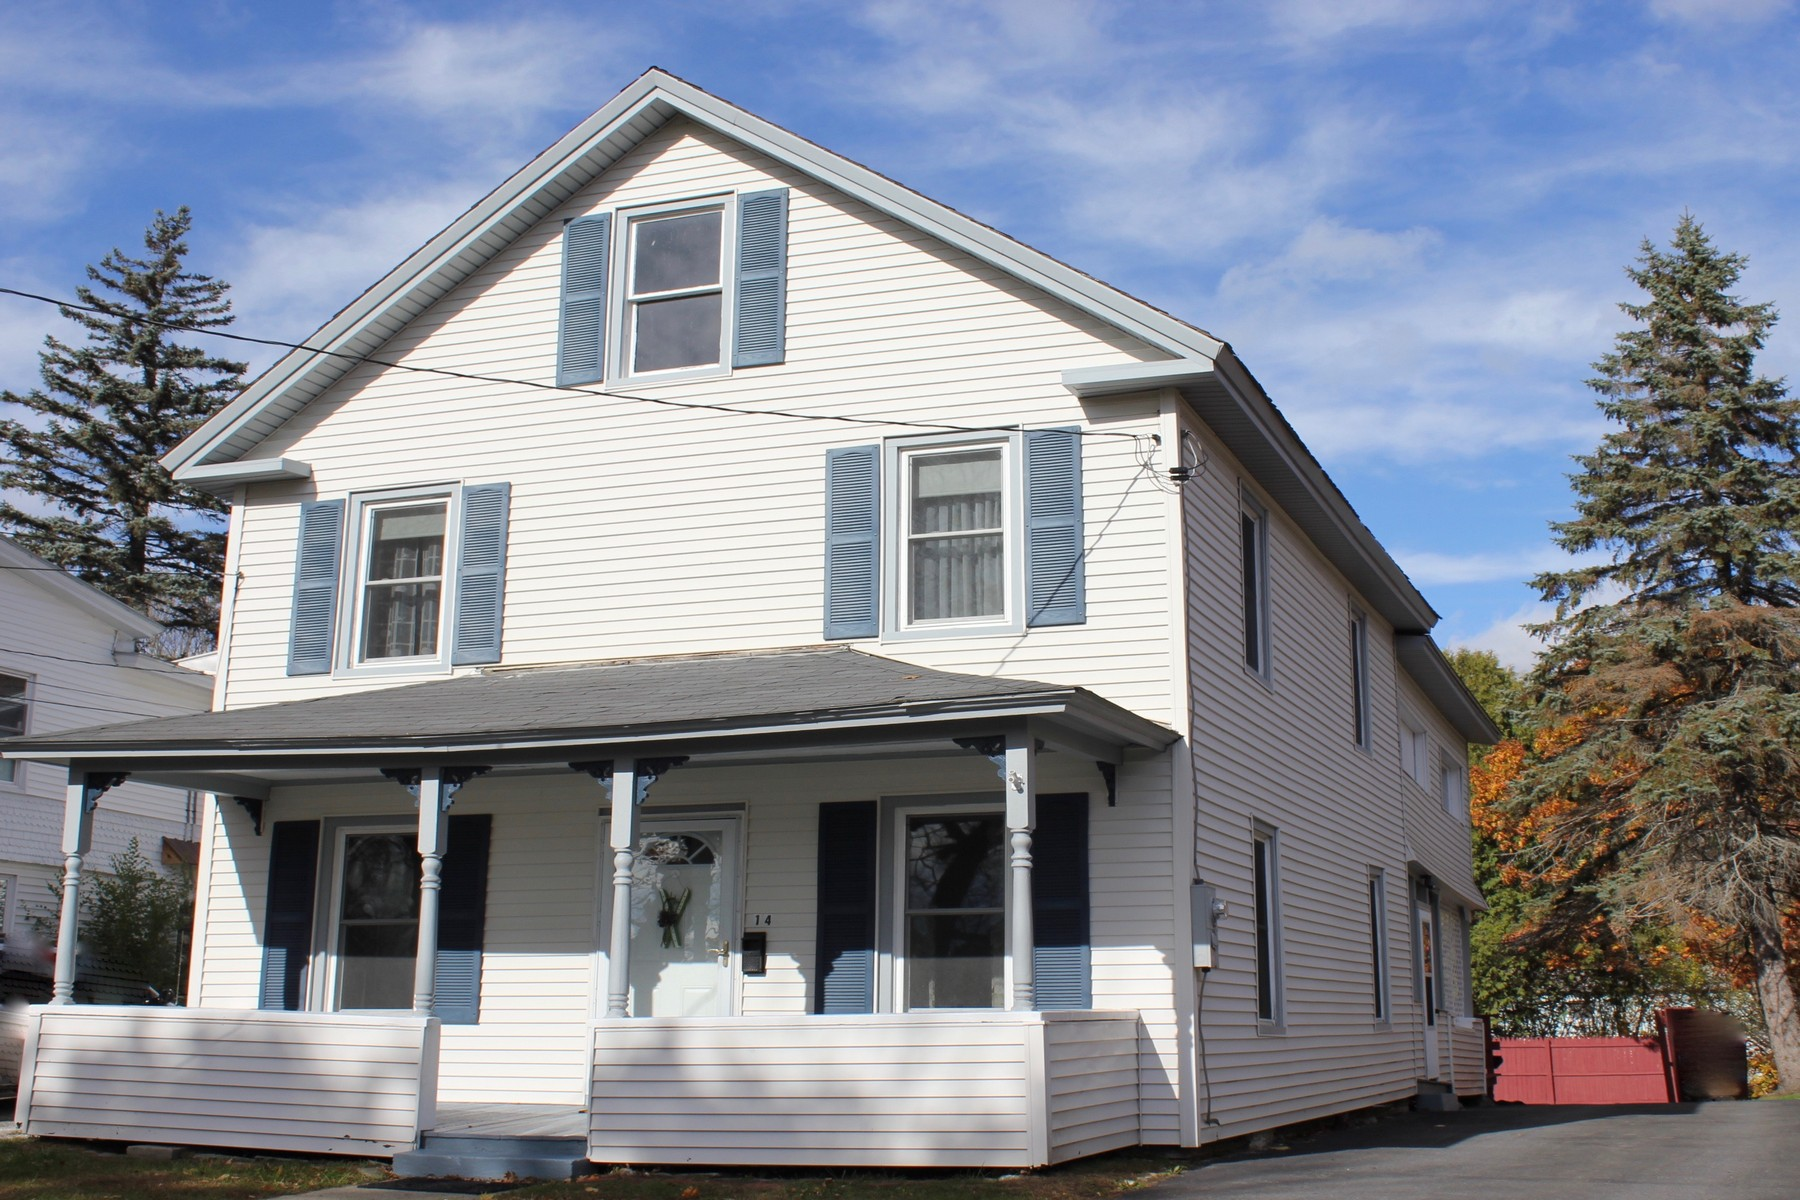 Single Family Home for Sale at Ludlow Village Home 14 Smith Ludlow, Vermont, 05149 United States